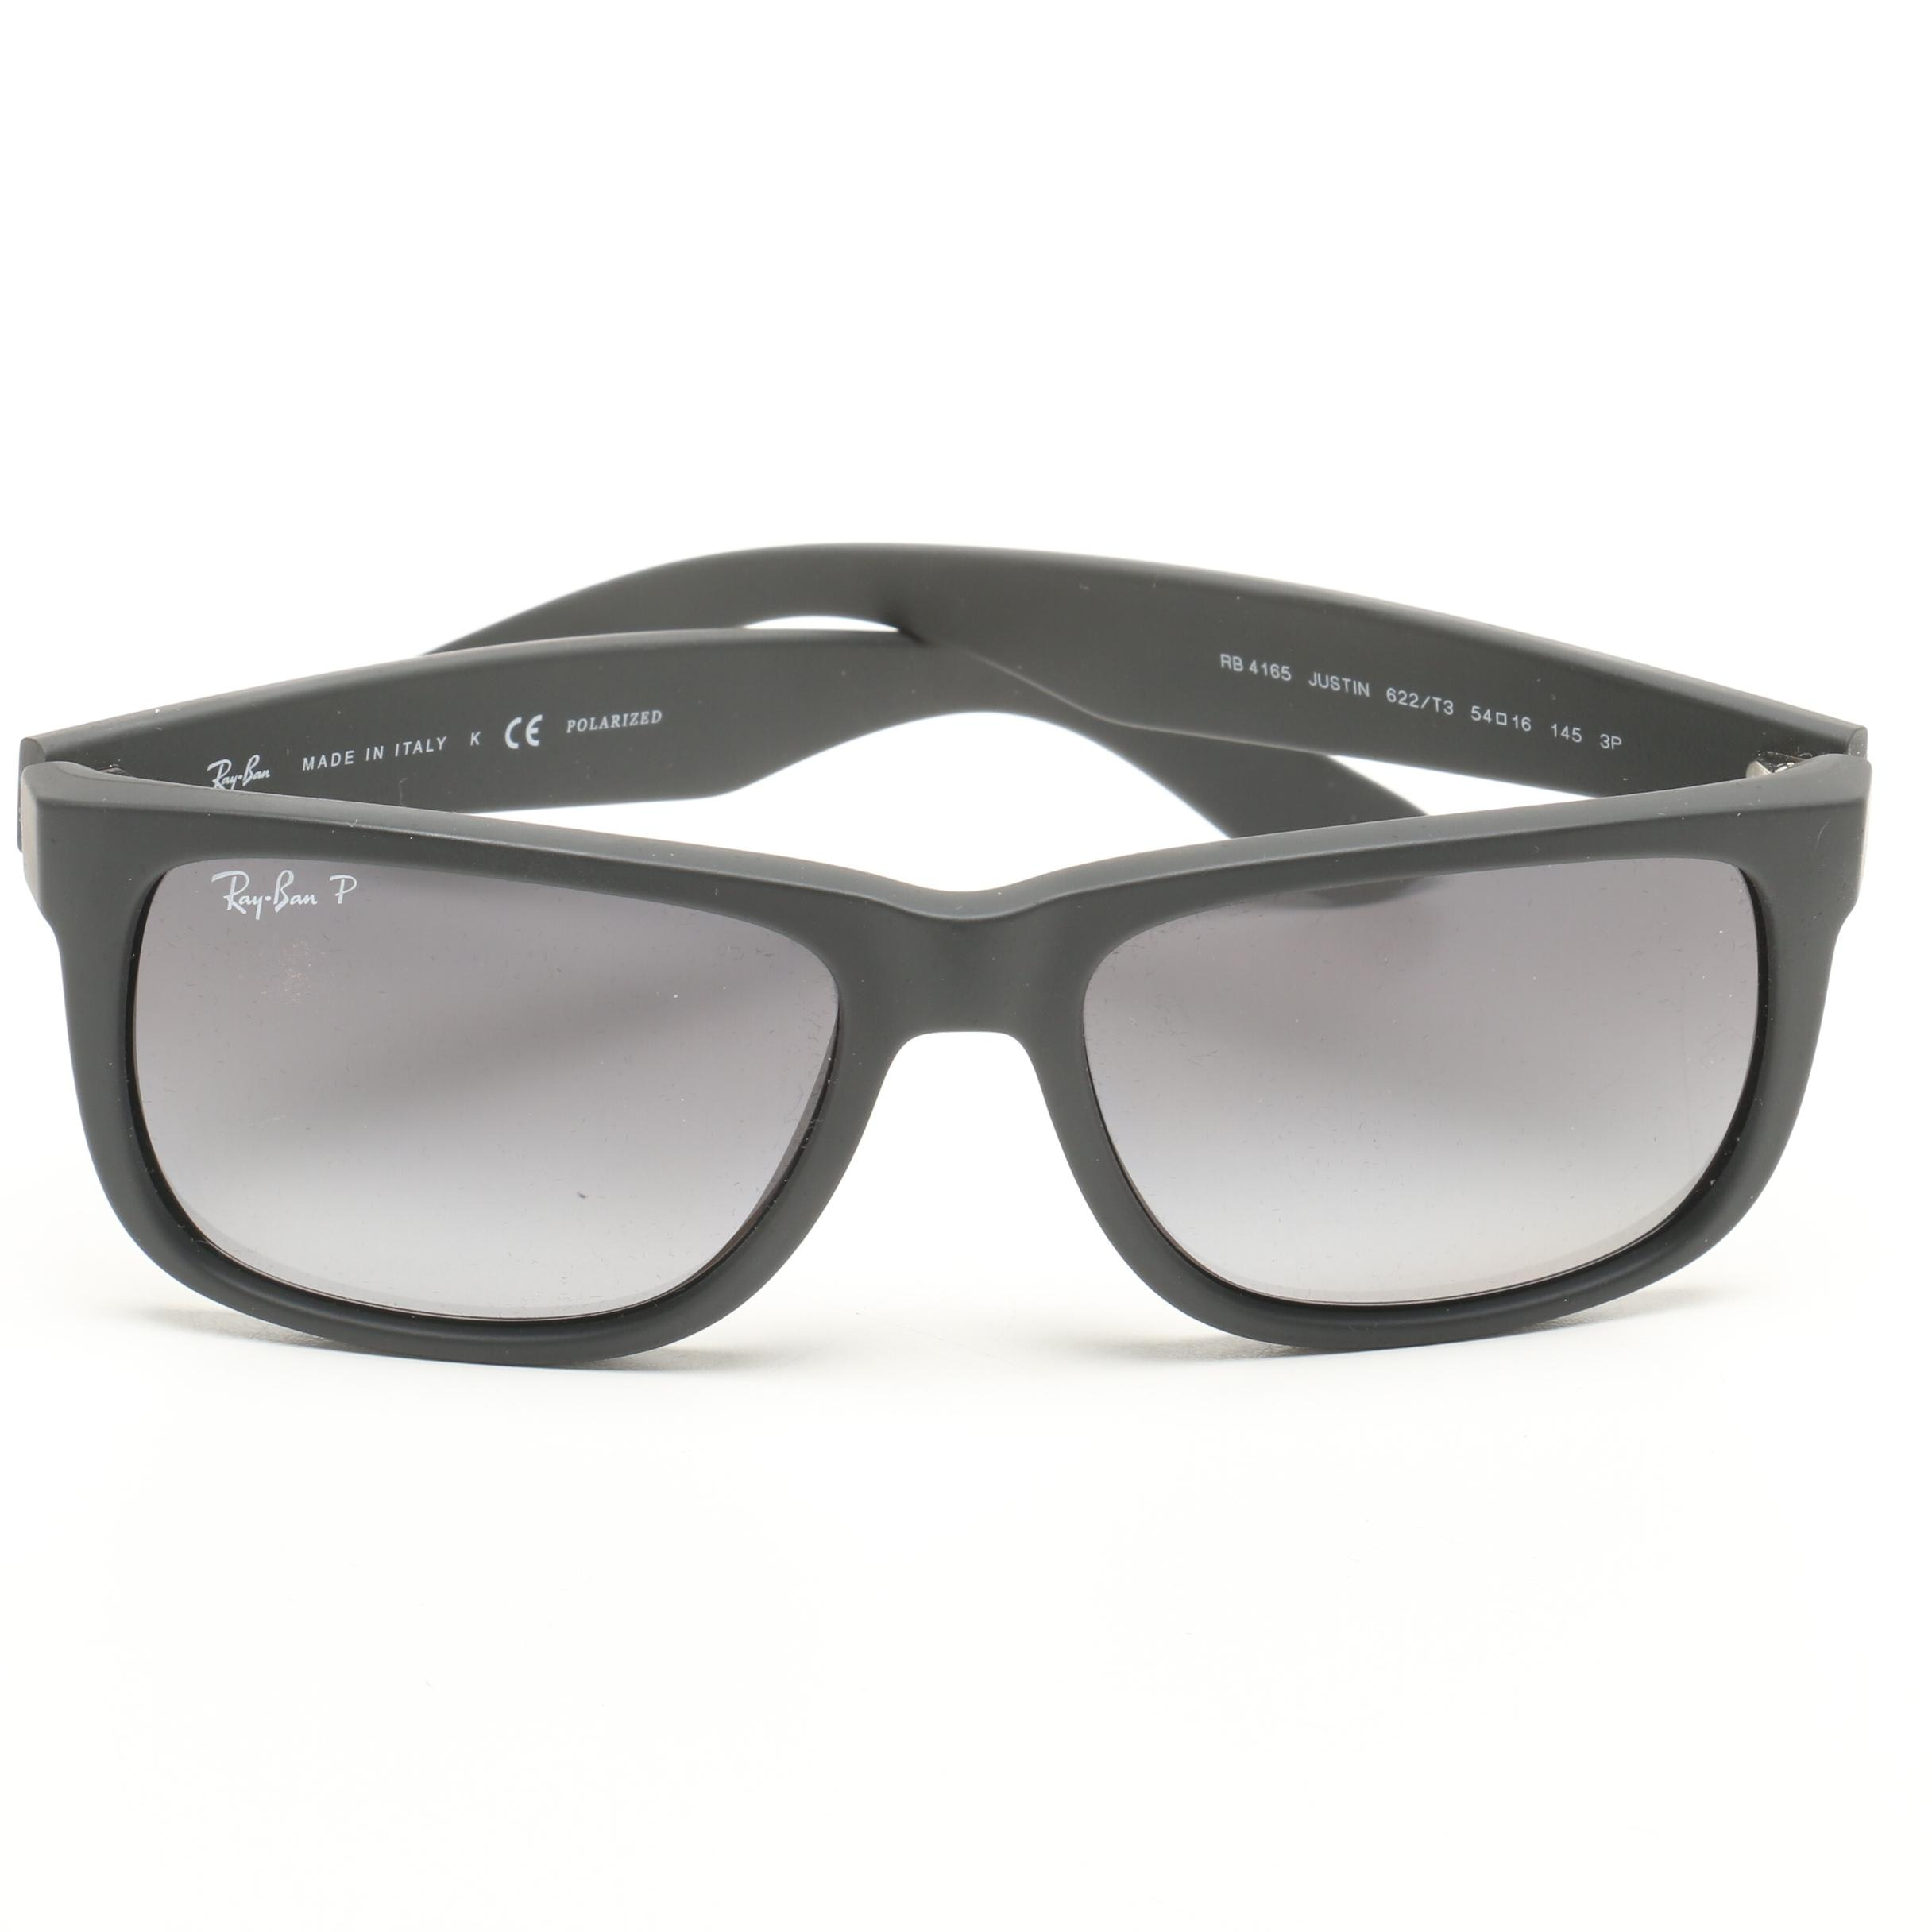 Ray-Ban Black Justin Polarized Sunglasses with Case, Made in Italy